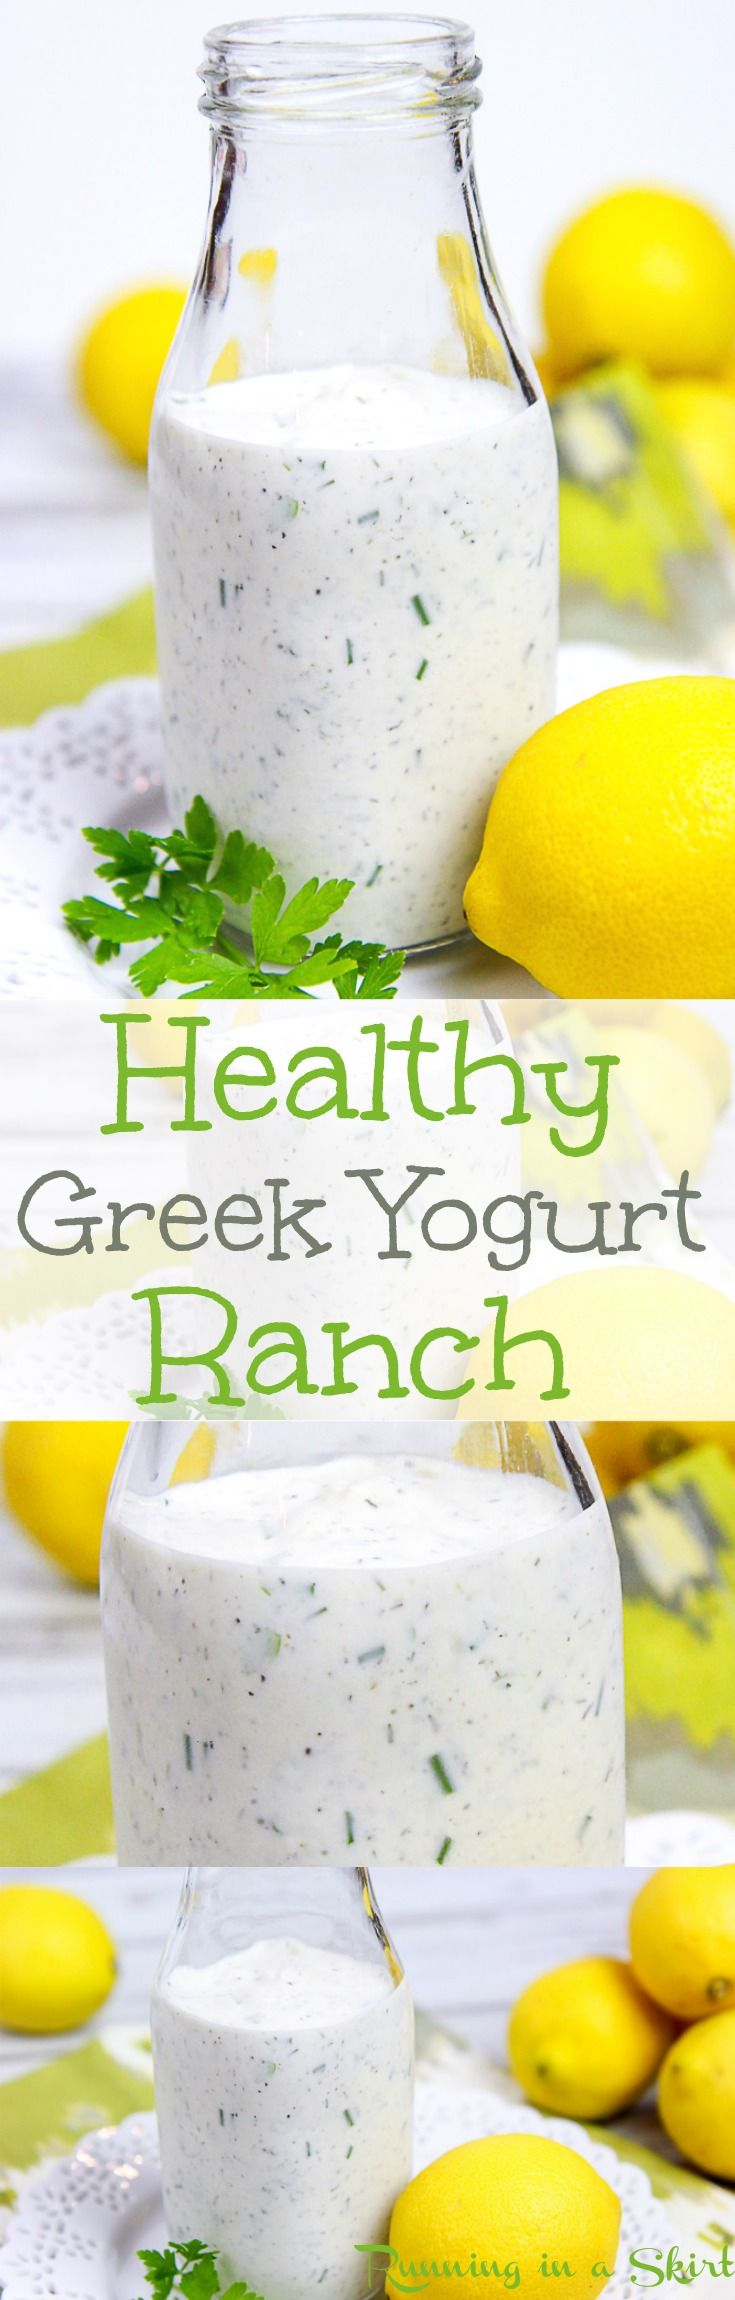 Homemade Healthy Greek Yogurt Ranch Dressing recipe.  A DIY, Clean, simple and easy recipe using pantry staples. Can be made thicker to use as a dip.  Tastes amazing- use for low carb, skinny or weight watchers to top a salad.  You'll never miss the bottle! / Running in a Skirt